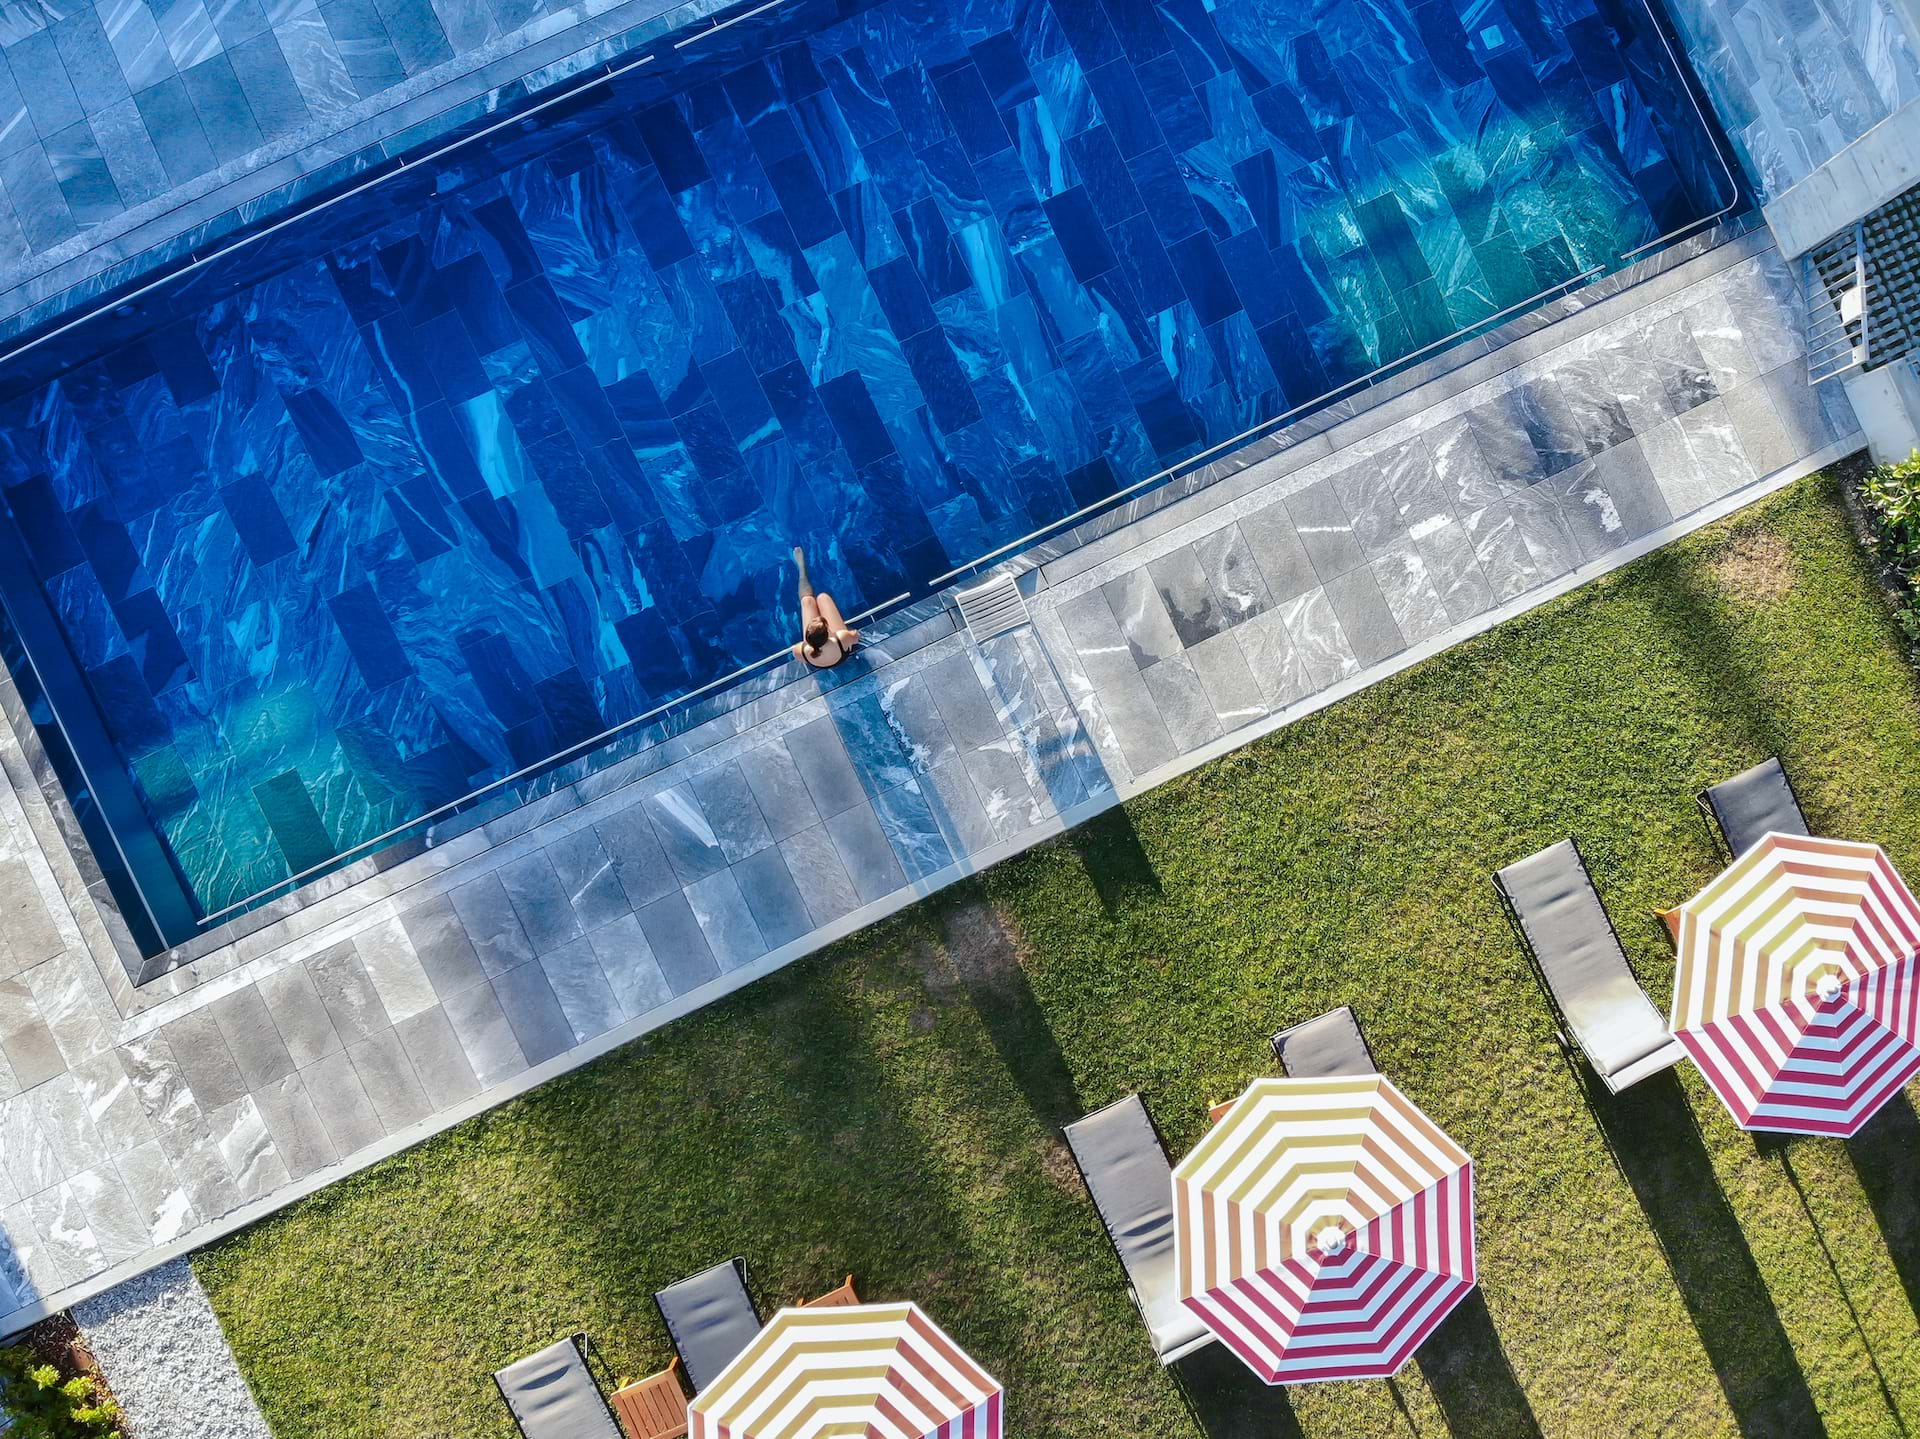 Swimmingpool_Bigatt_Hotel_and_Restaurant_Lugano_09.jpg